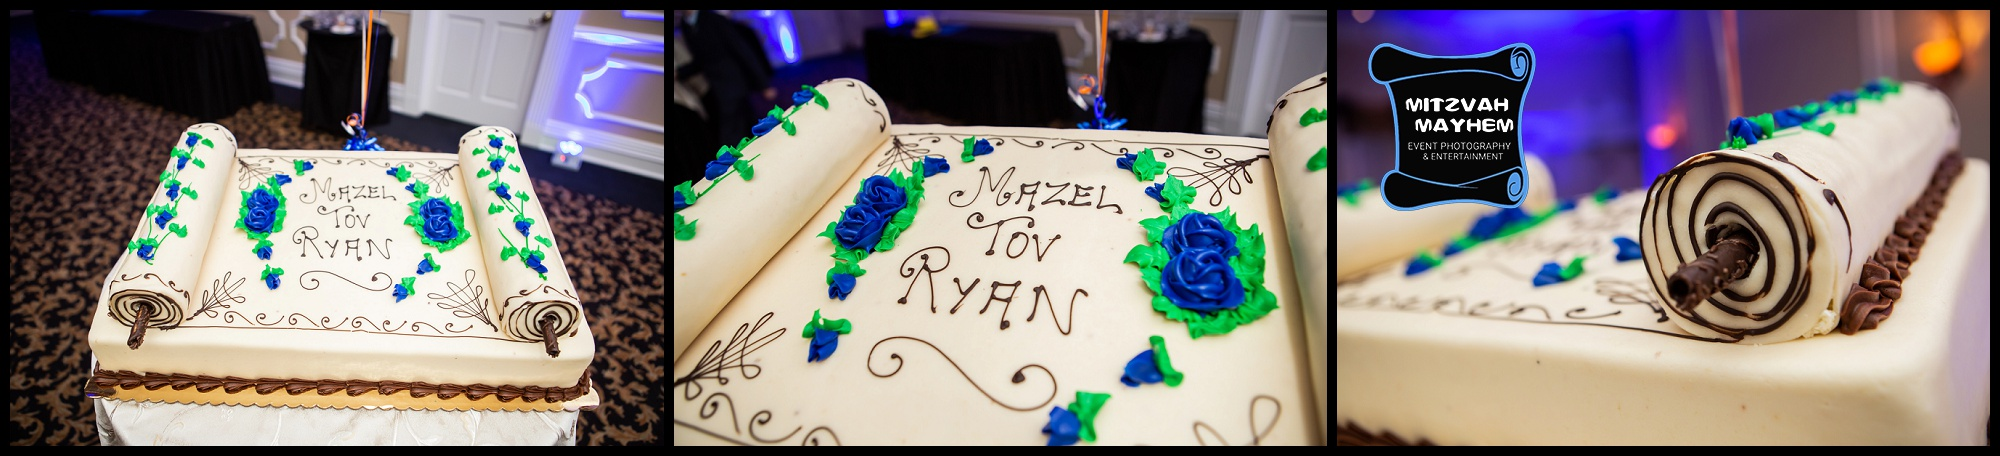 nj-mitzvah-photographer-jacques-caterers-35.JPG